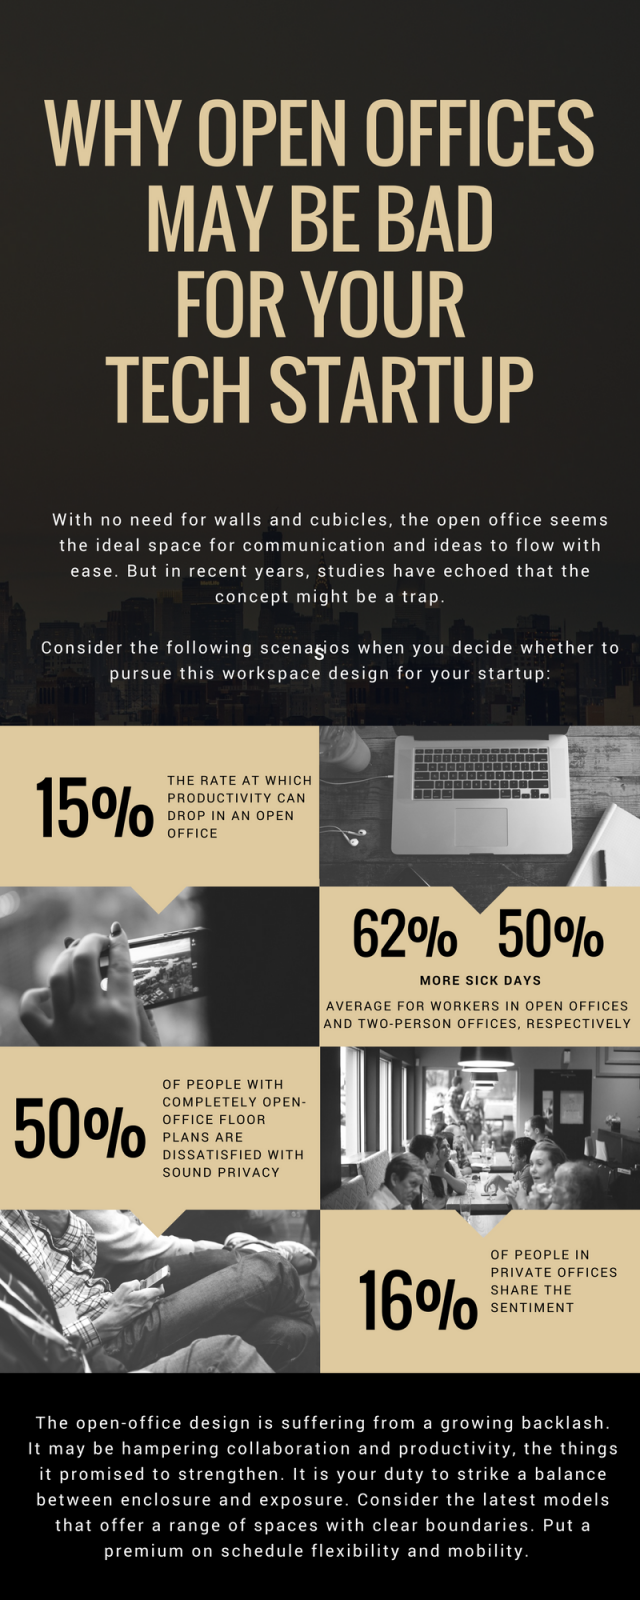 Why Open Offices May Be Bad For Your Startup - Infographic